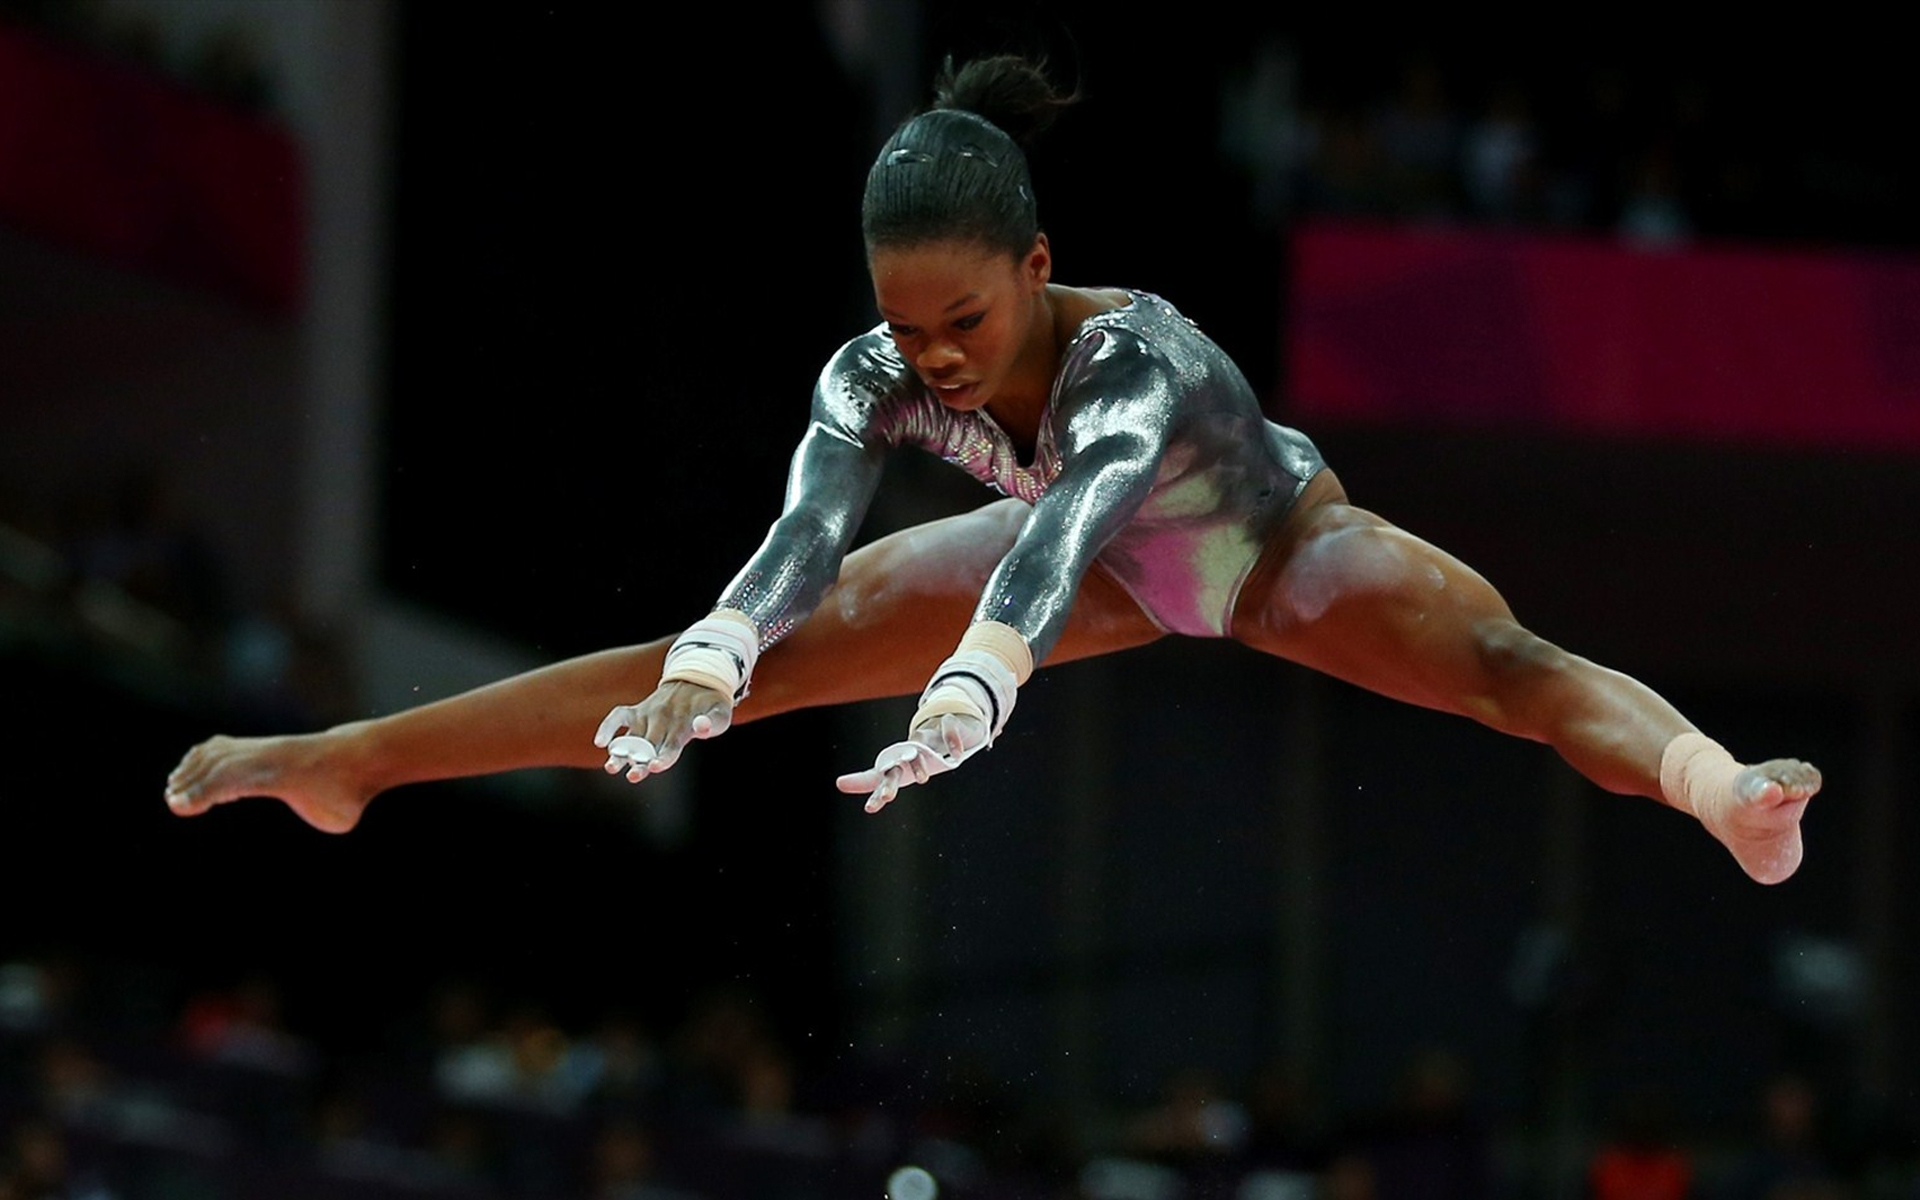 Gabrielle Douglas wallpapers and images   wallpapers 1920x1200